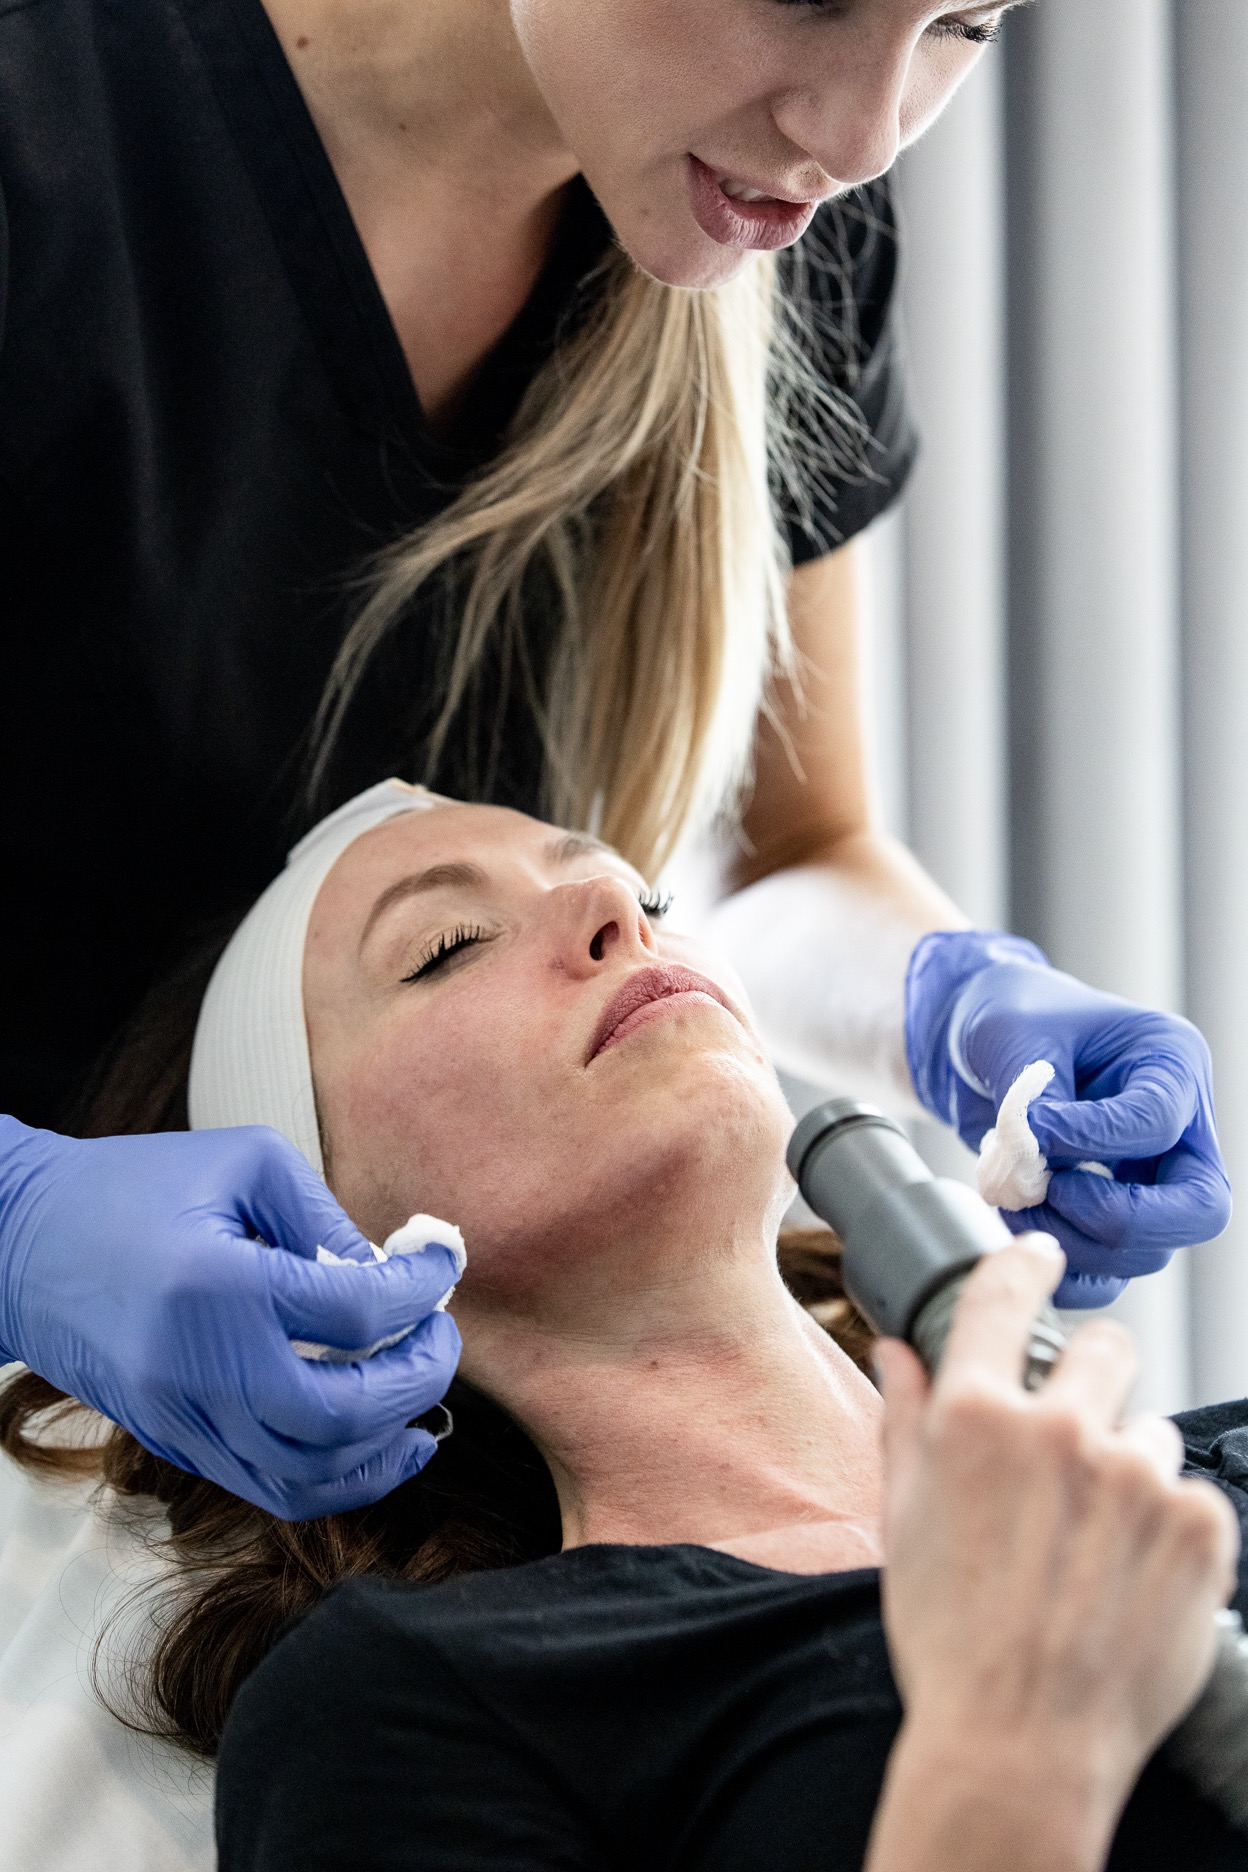 After finishing with both the Laser Genesis and IPL, she cleaned off my face and let me keep blowing air on my face and chest until the heat subsided and my skin felt more comfortable.